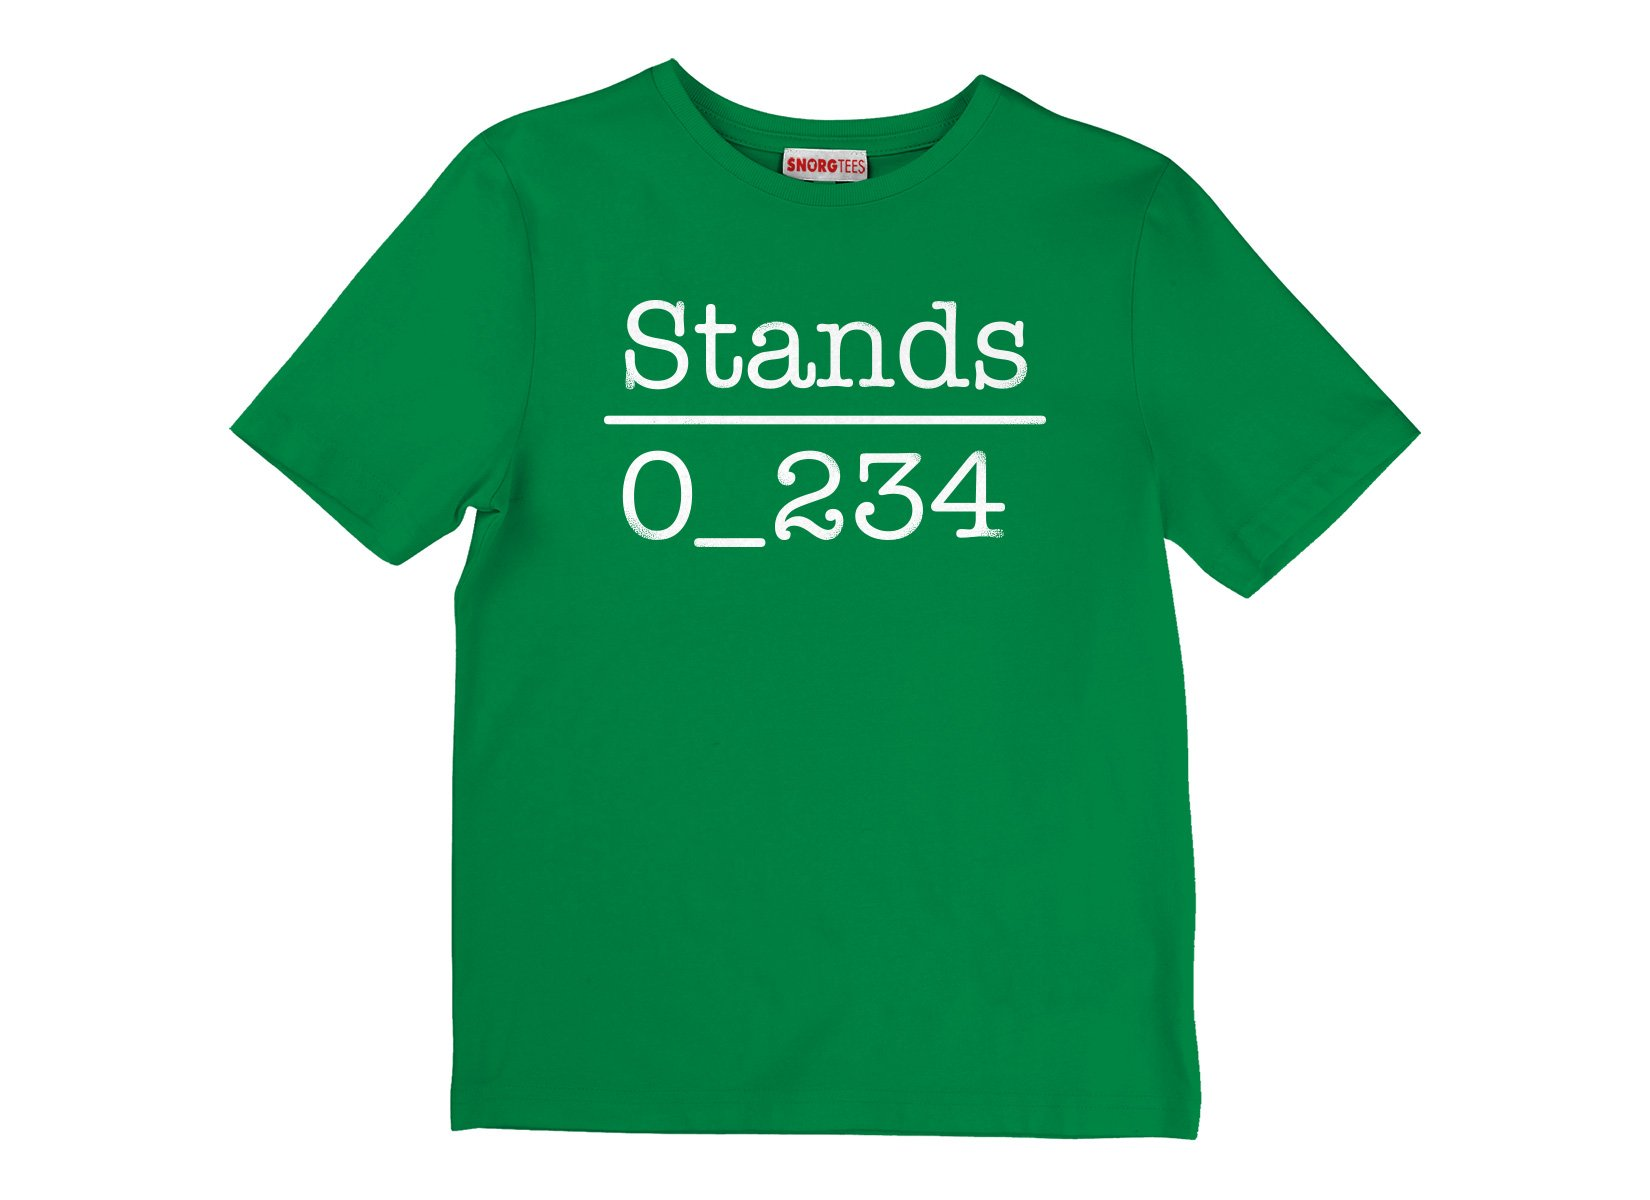 No 1 Under Stands on Kids T-Shirt